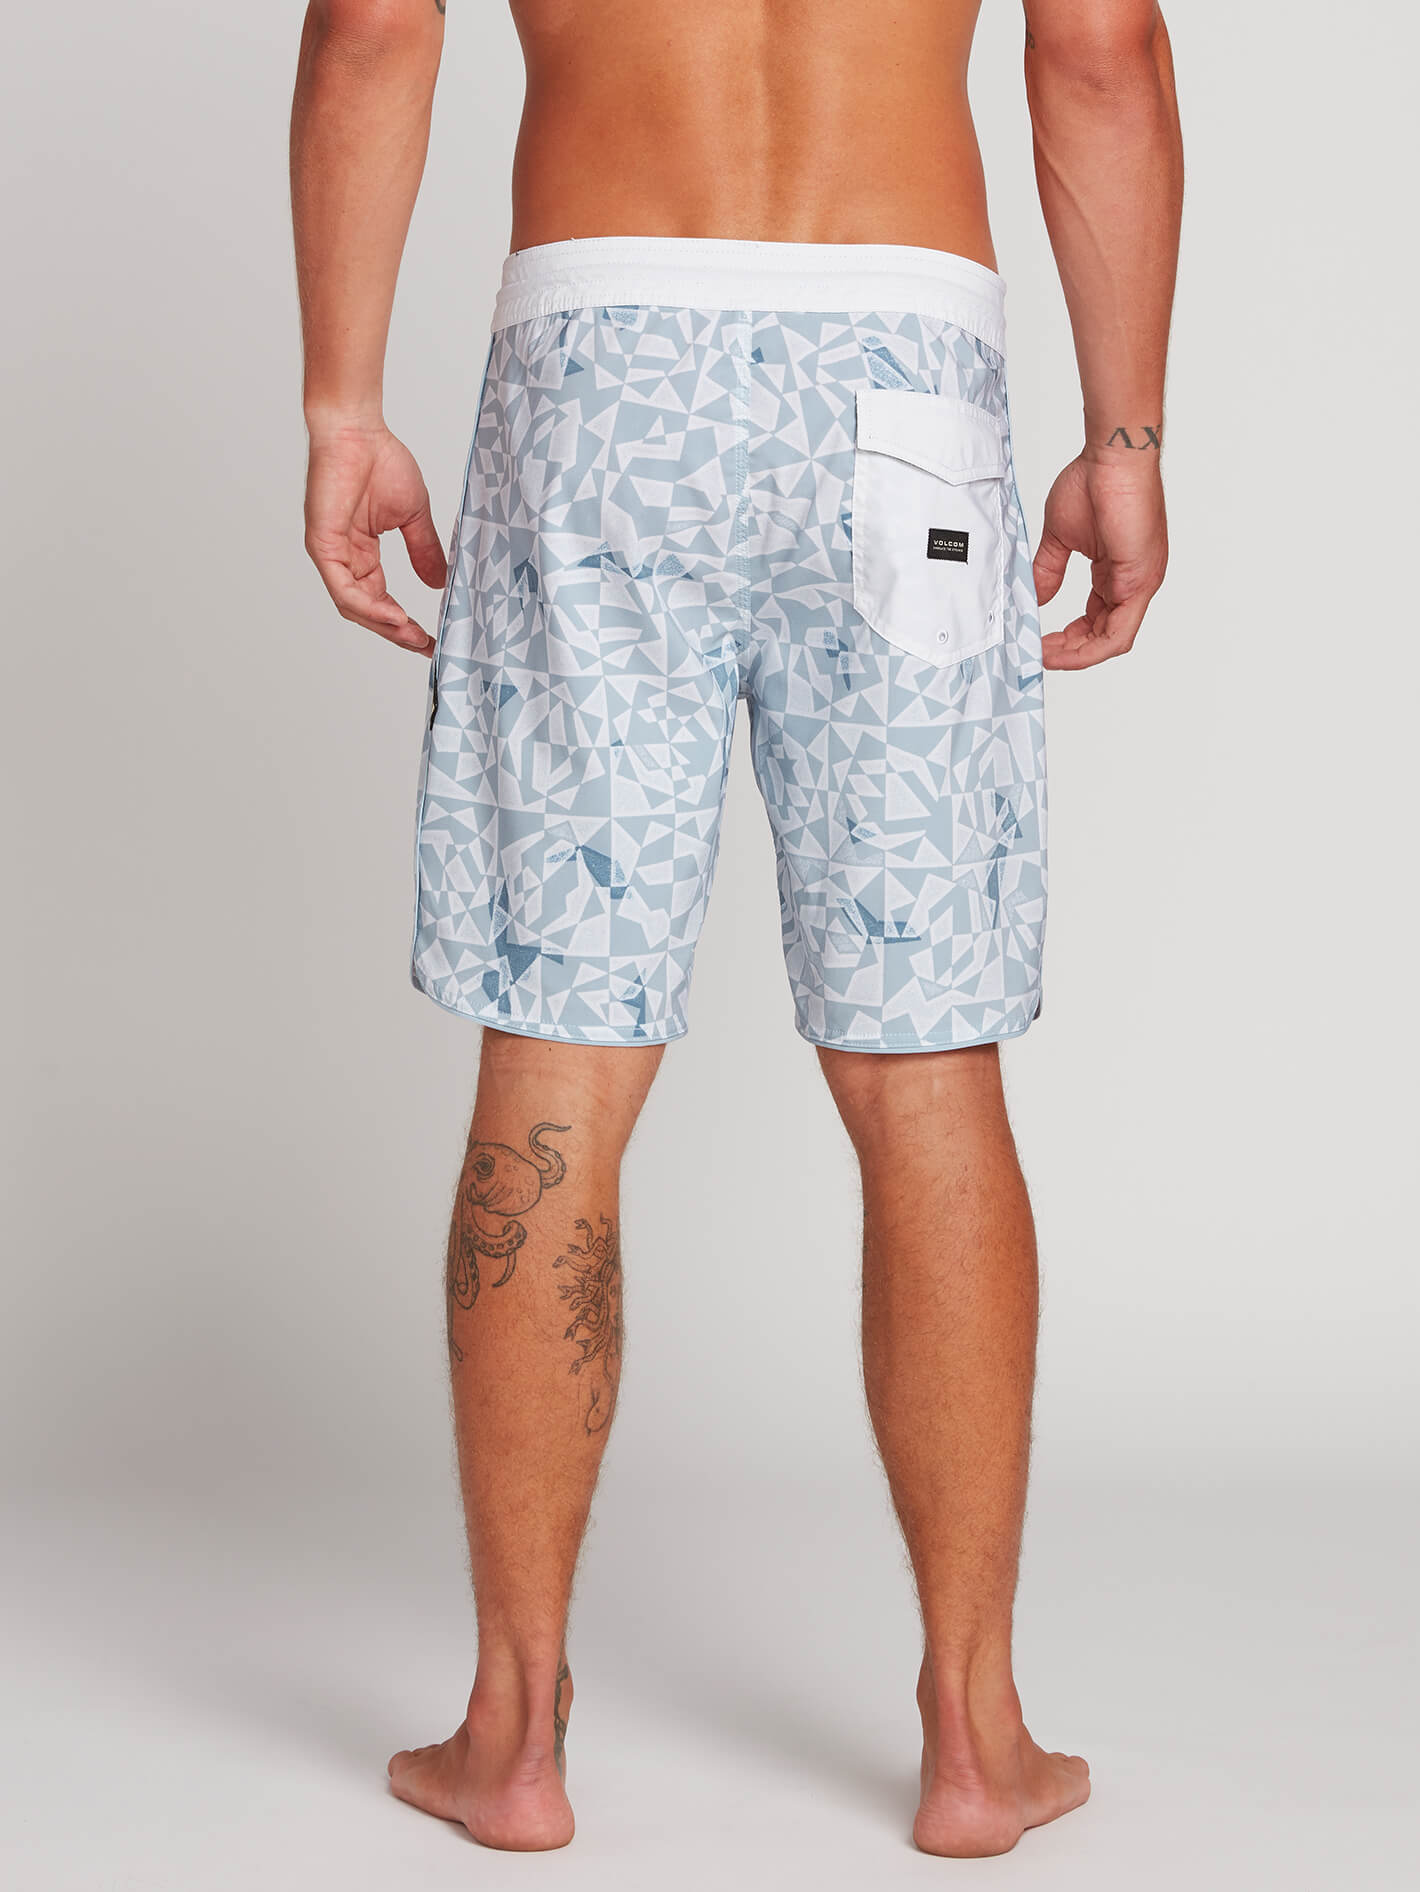 Boardshortsamp; Swim Swim Men's TrunksSurf TrunksSurf Volcom Men's Boardshortsamp; POkuXZi